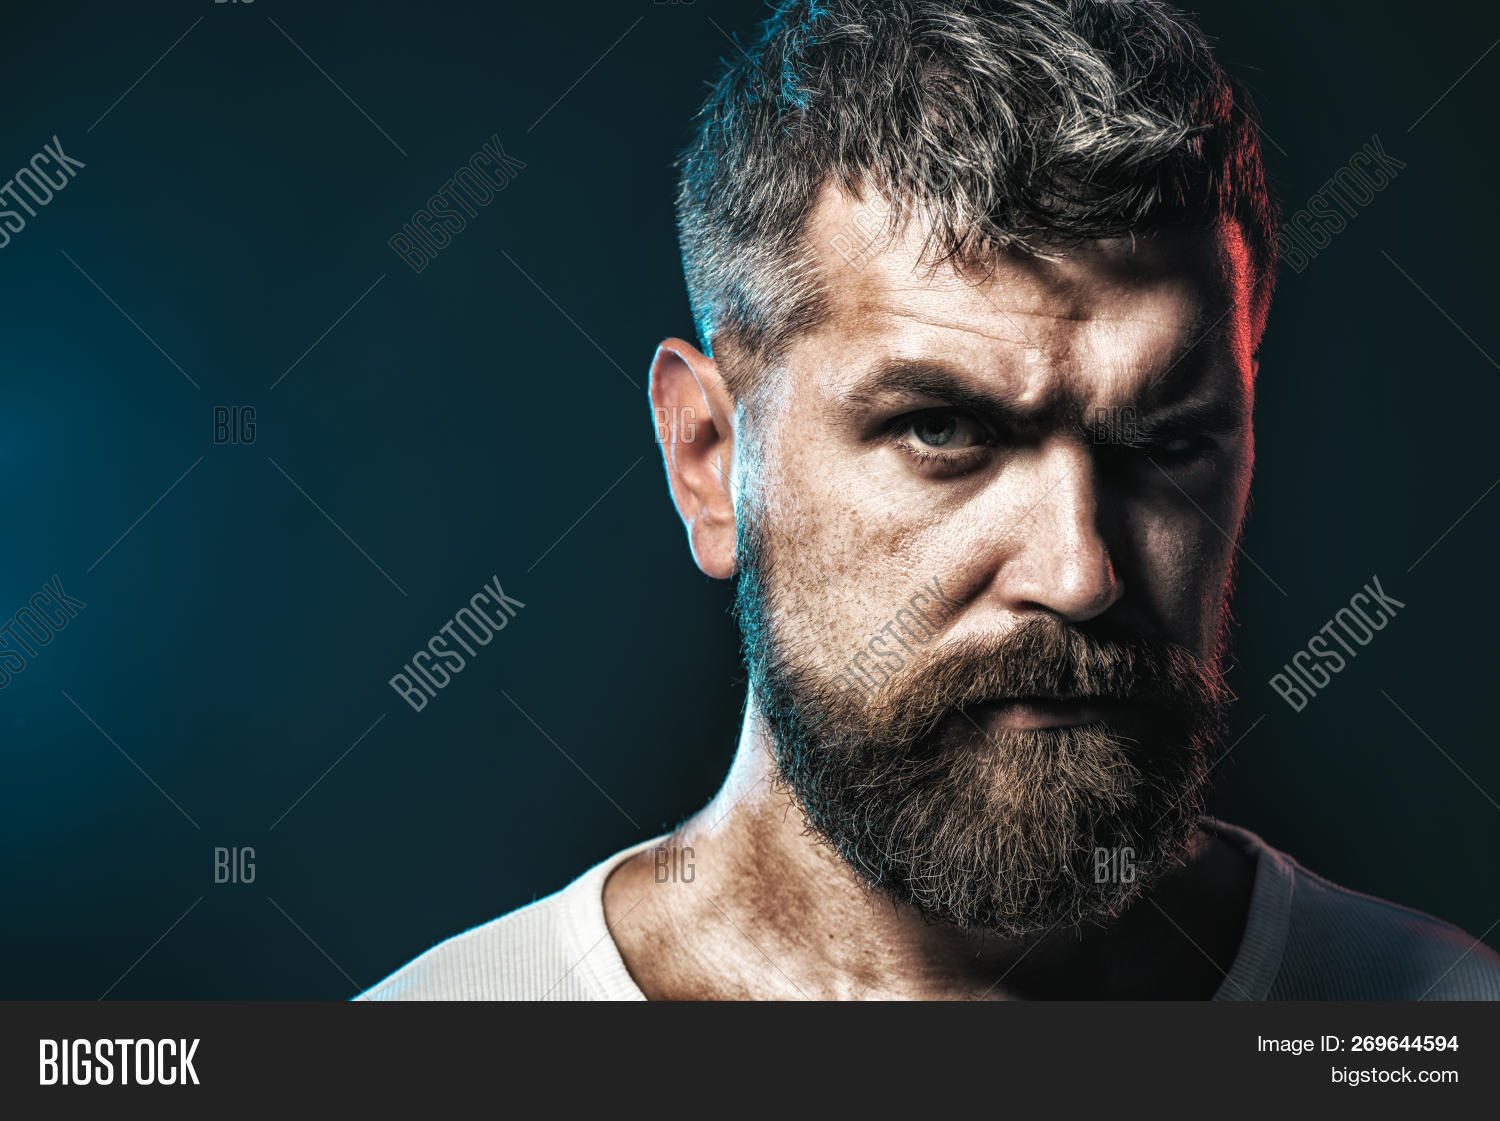 active,art,athlete,athletic,attractive,bearded,bodybuilder,boxer,brutal,combat,confidence,confident,defense,determination,determined,discipline,exercise,eyes,fashion,fighter,fit,fitness,focused,healthy,intense,japanese,judo,karate,kata,male,man,martial,masculine,masculinity,master,muscular,mustache,practice,serious,skill,sport,sporty,strength,strong,style,taekwondo,tough,traditional,training,workout